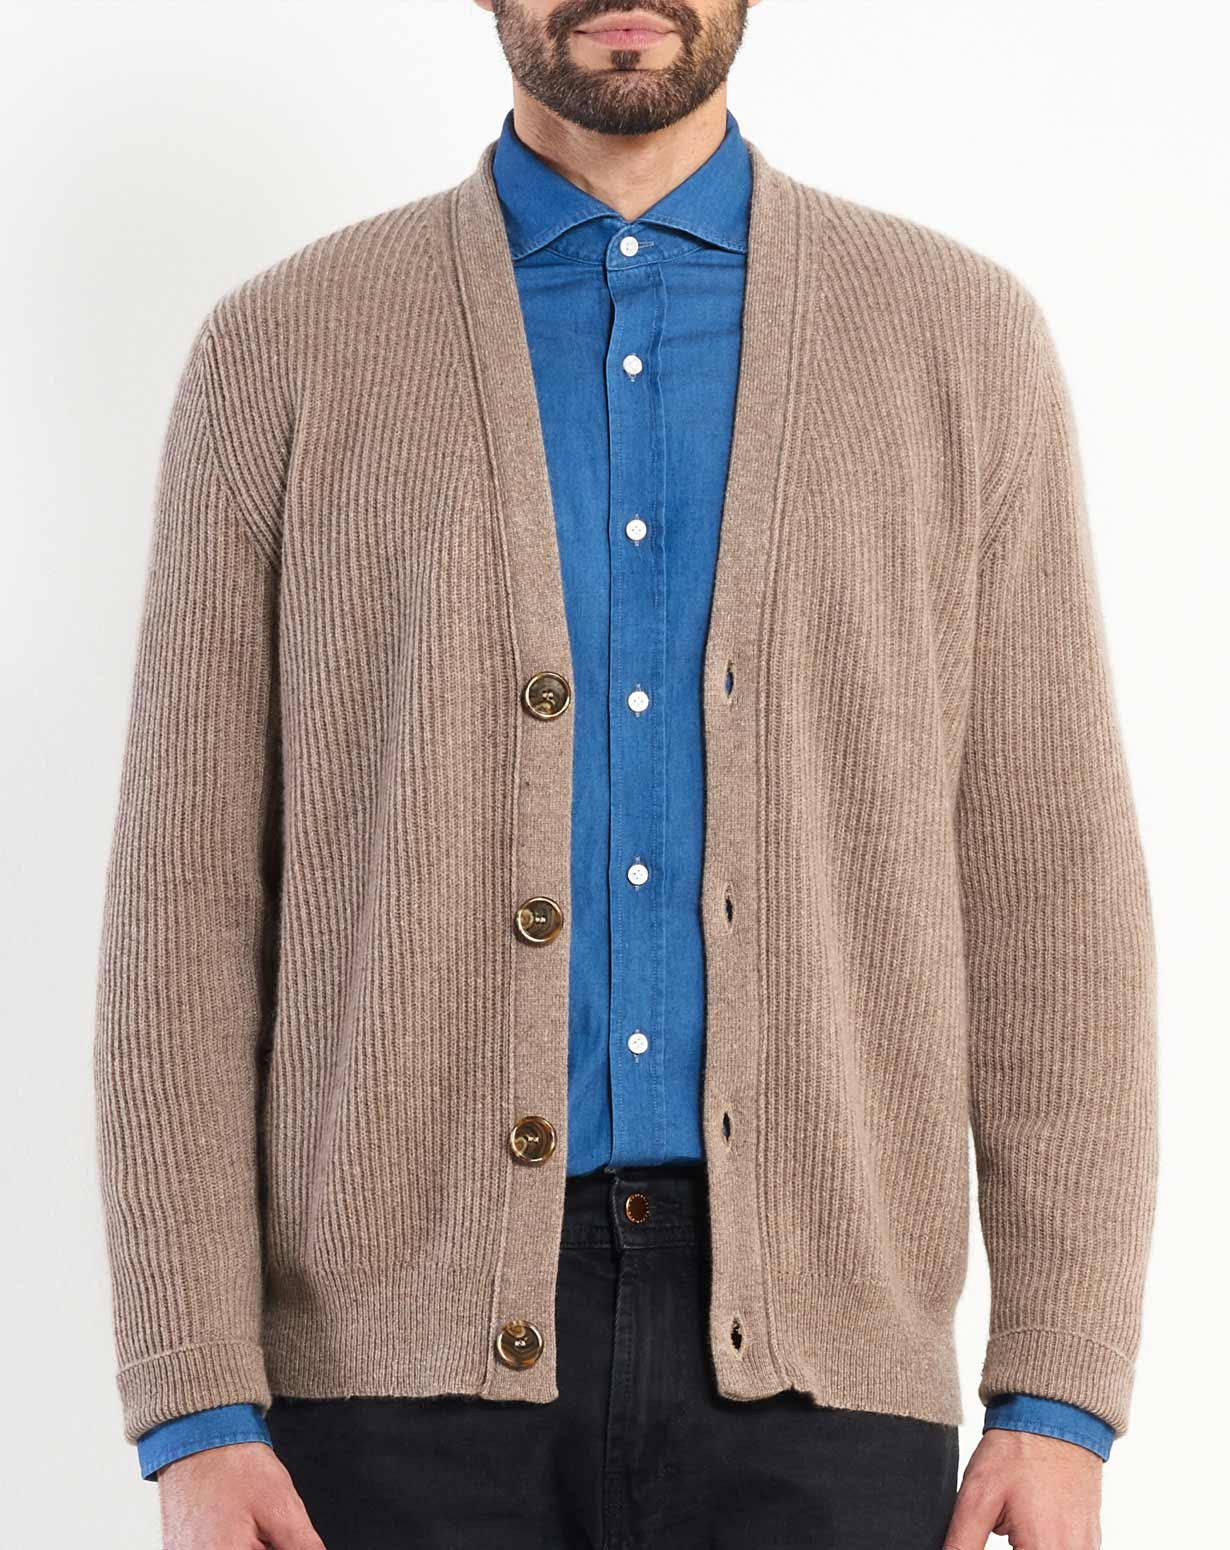 Men's Cashmere Fisherman Rib Cardigan